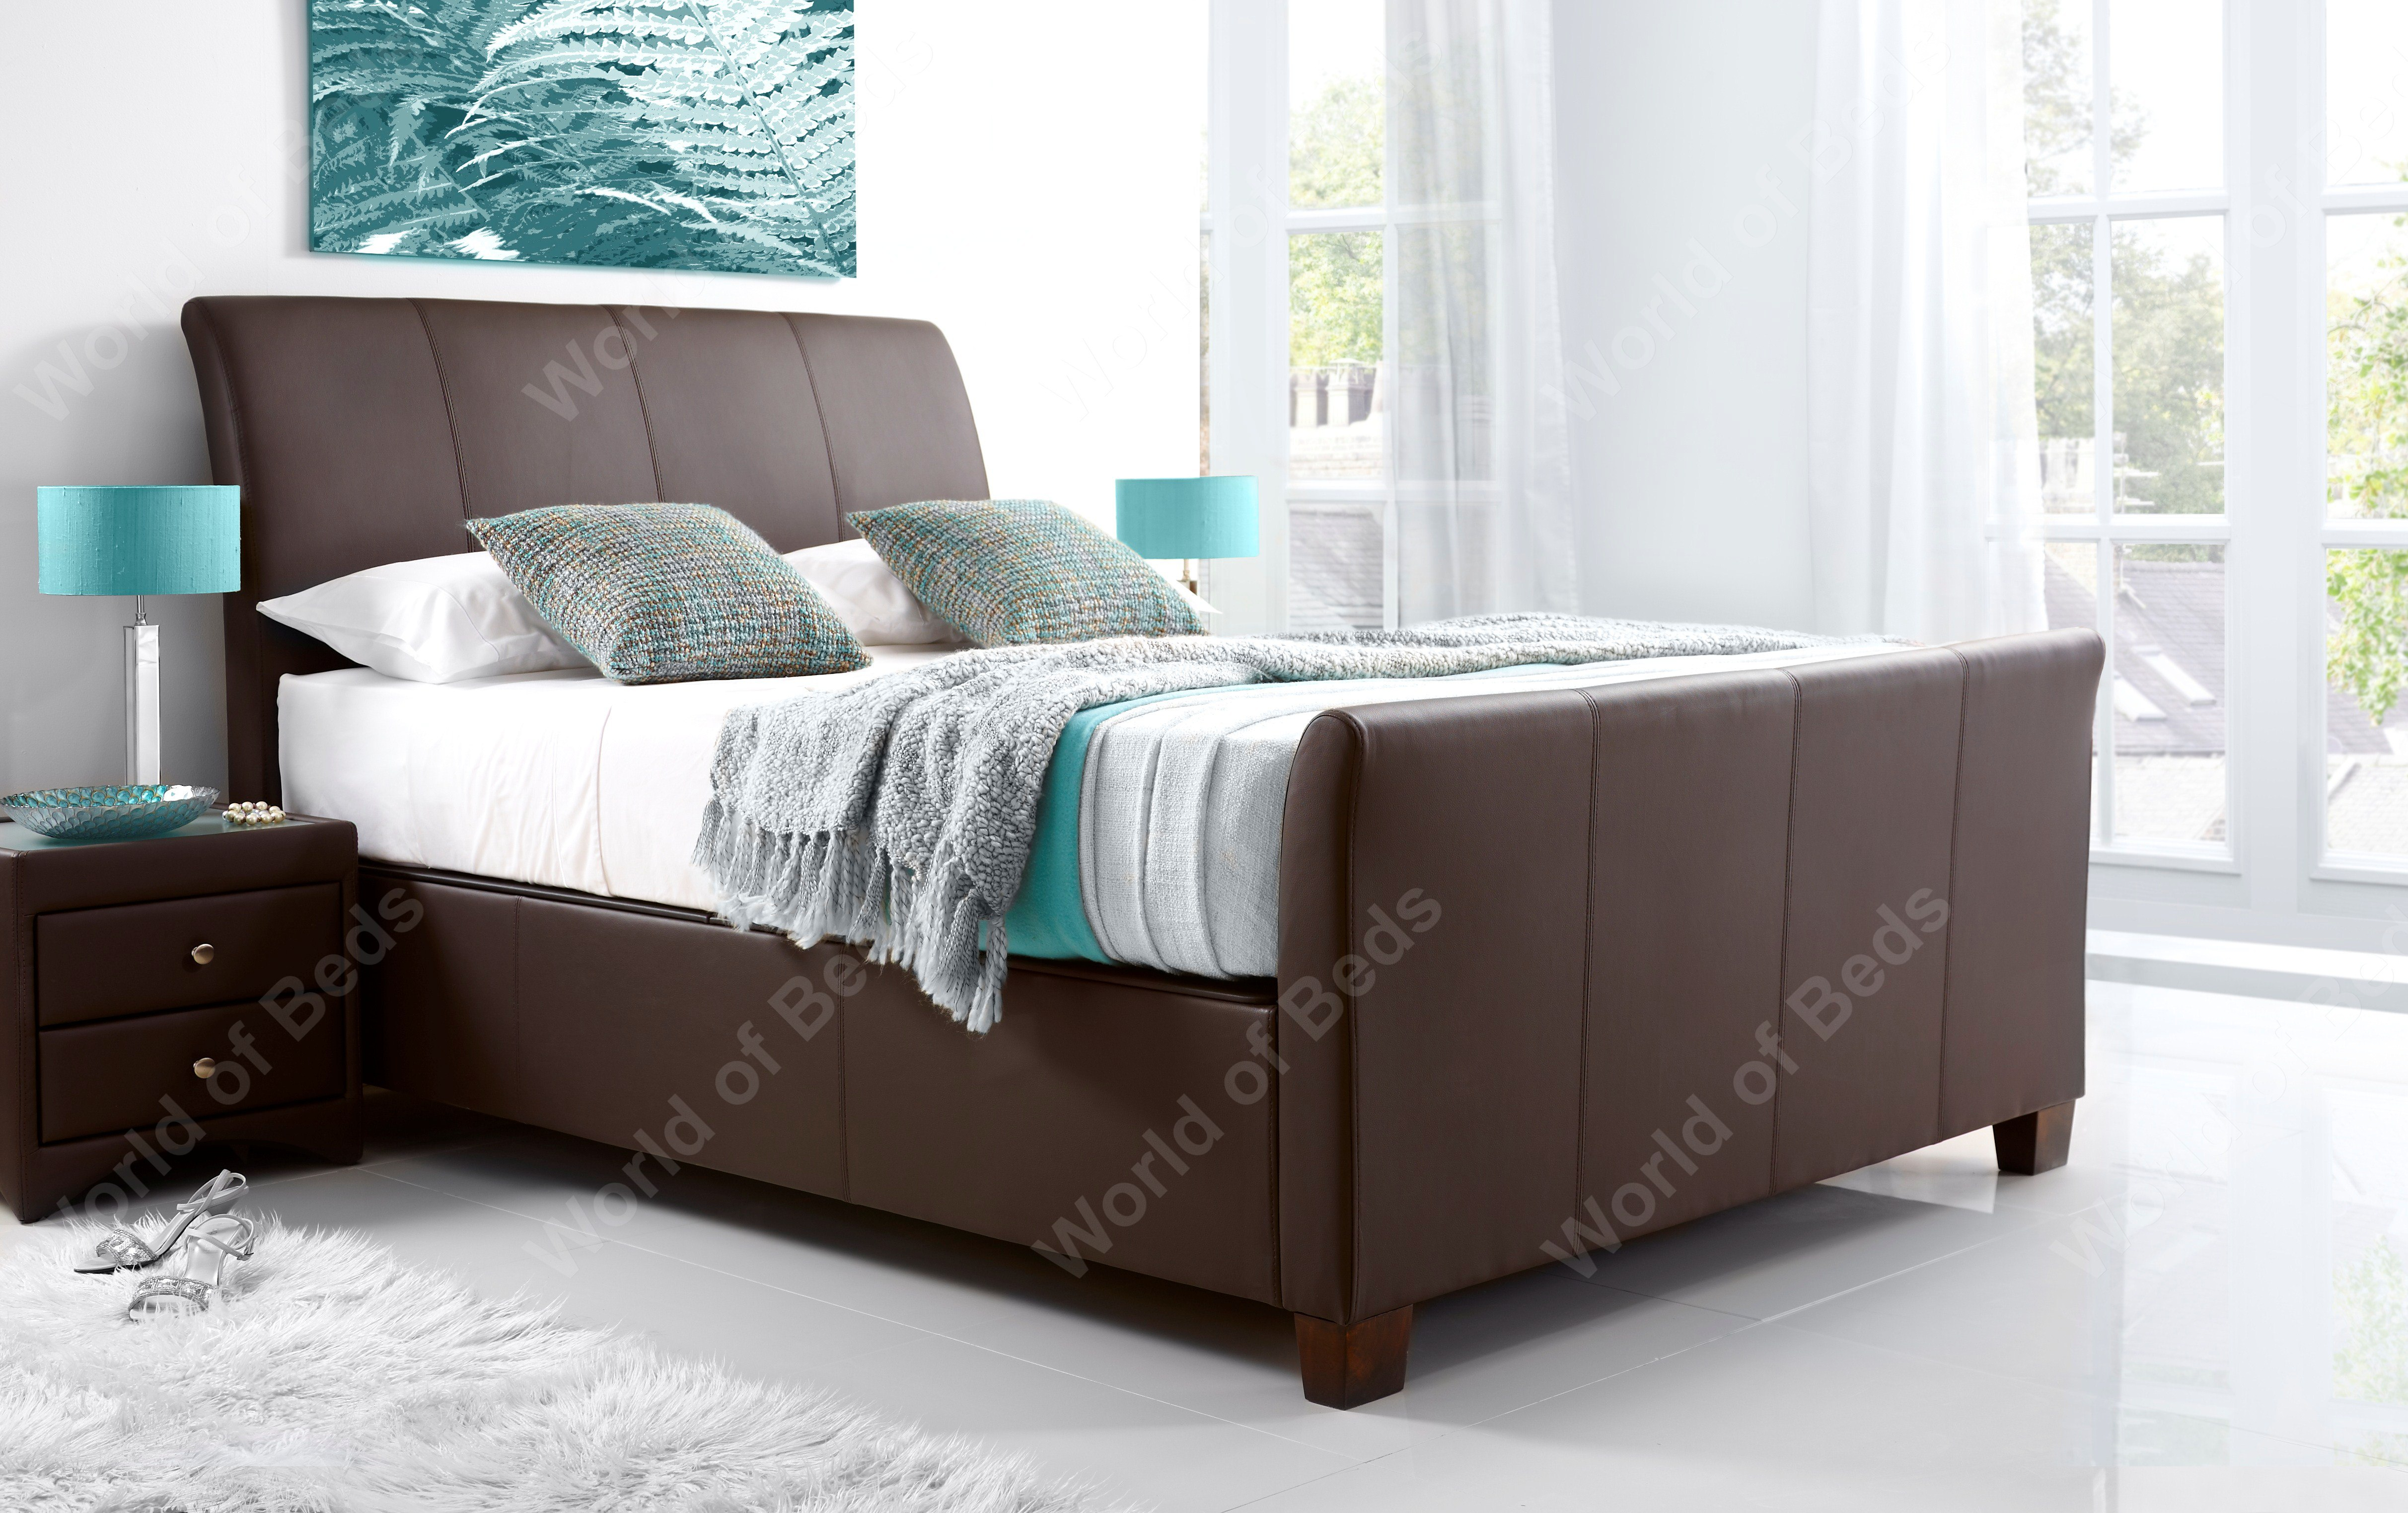 Allendale Ottoman Bed, brown